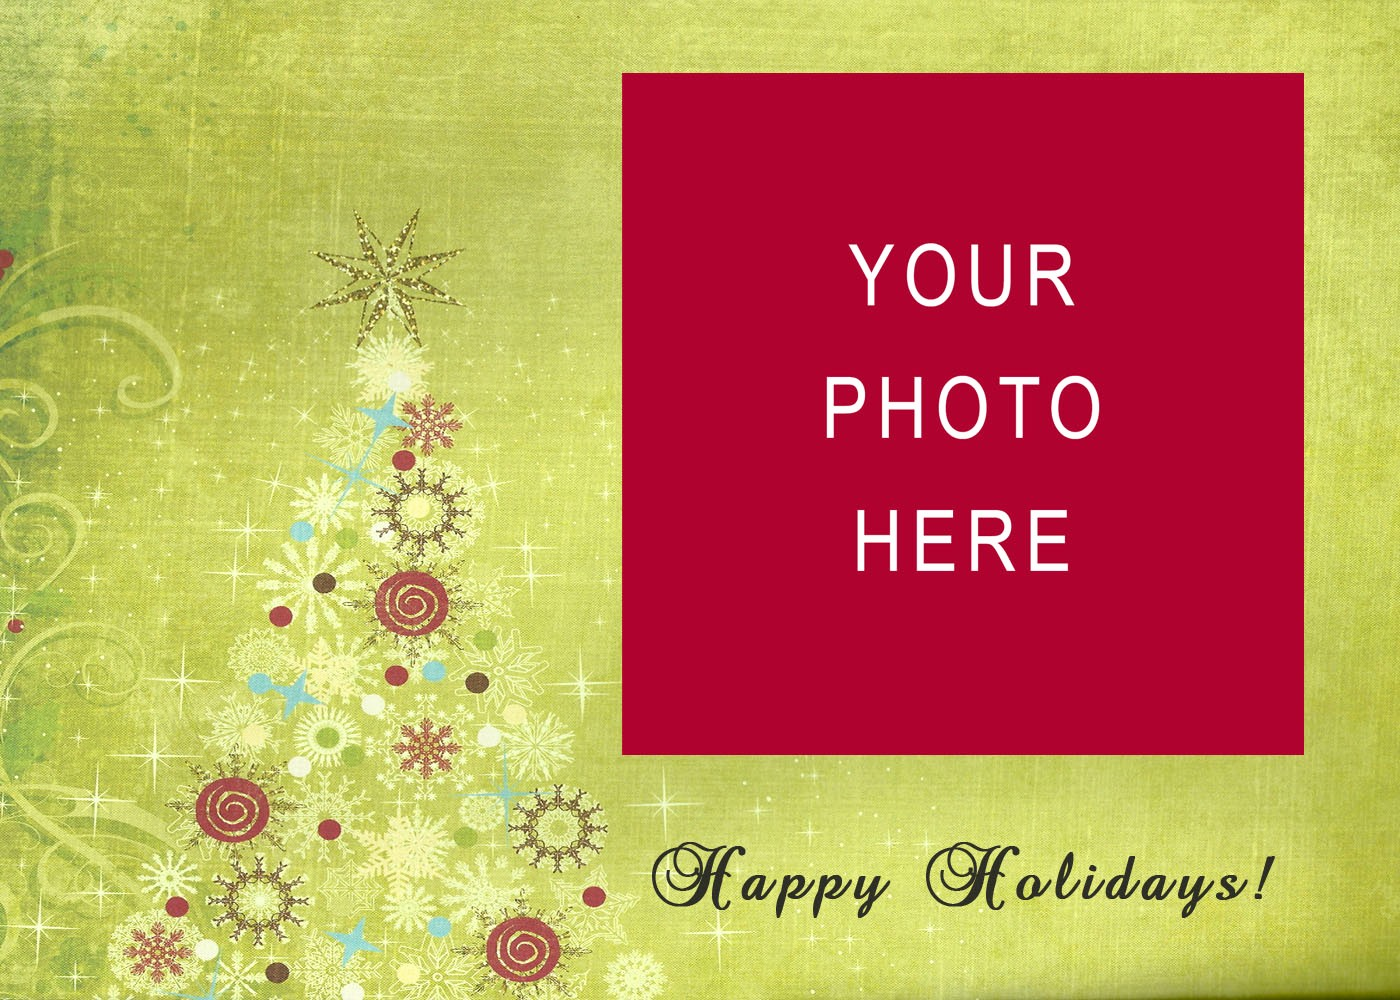 Microsoft Word Christmas Card Templates Best Of Free Christmas Card Templates